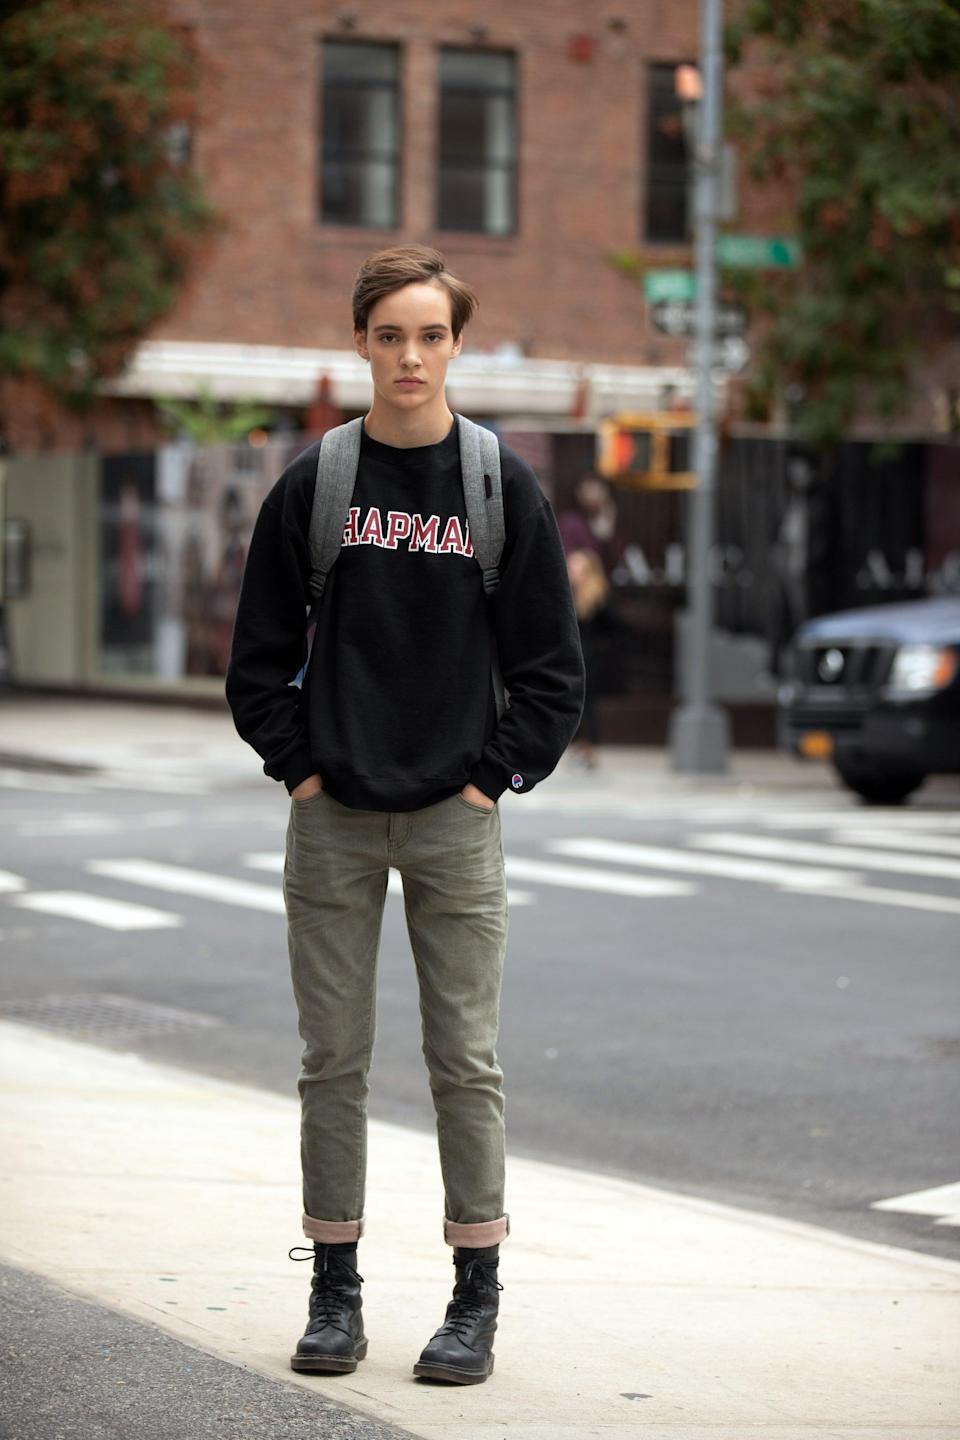 <p>Oslo, who identifies as non-binary transgender, hails from California and has walked the runway for Gucci, and they model for both menswear and womenswear.</p>